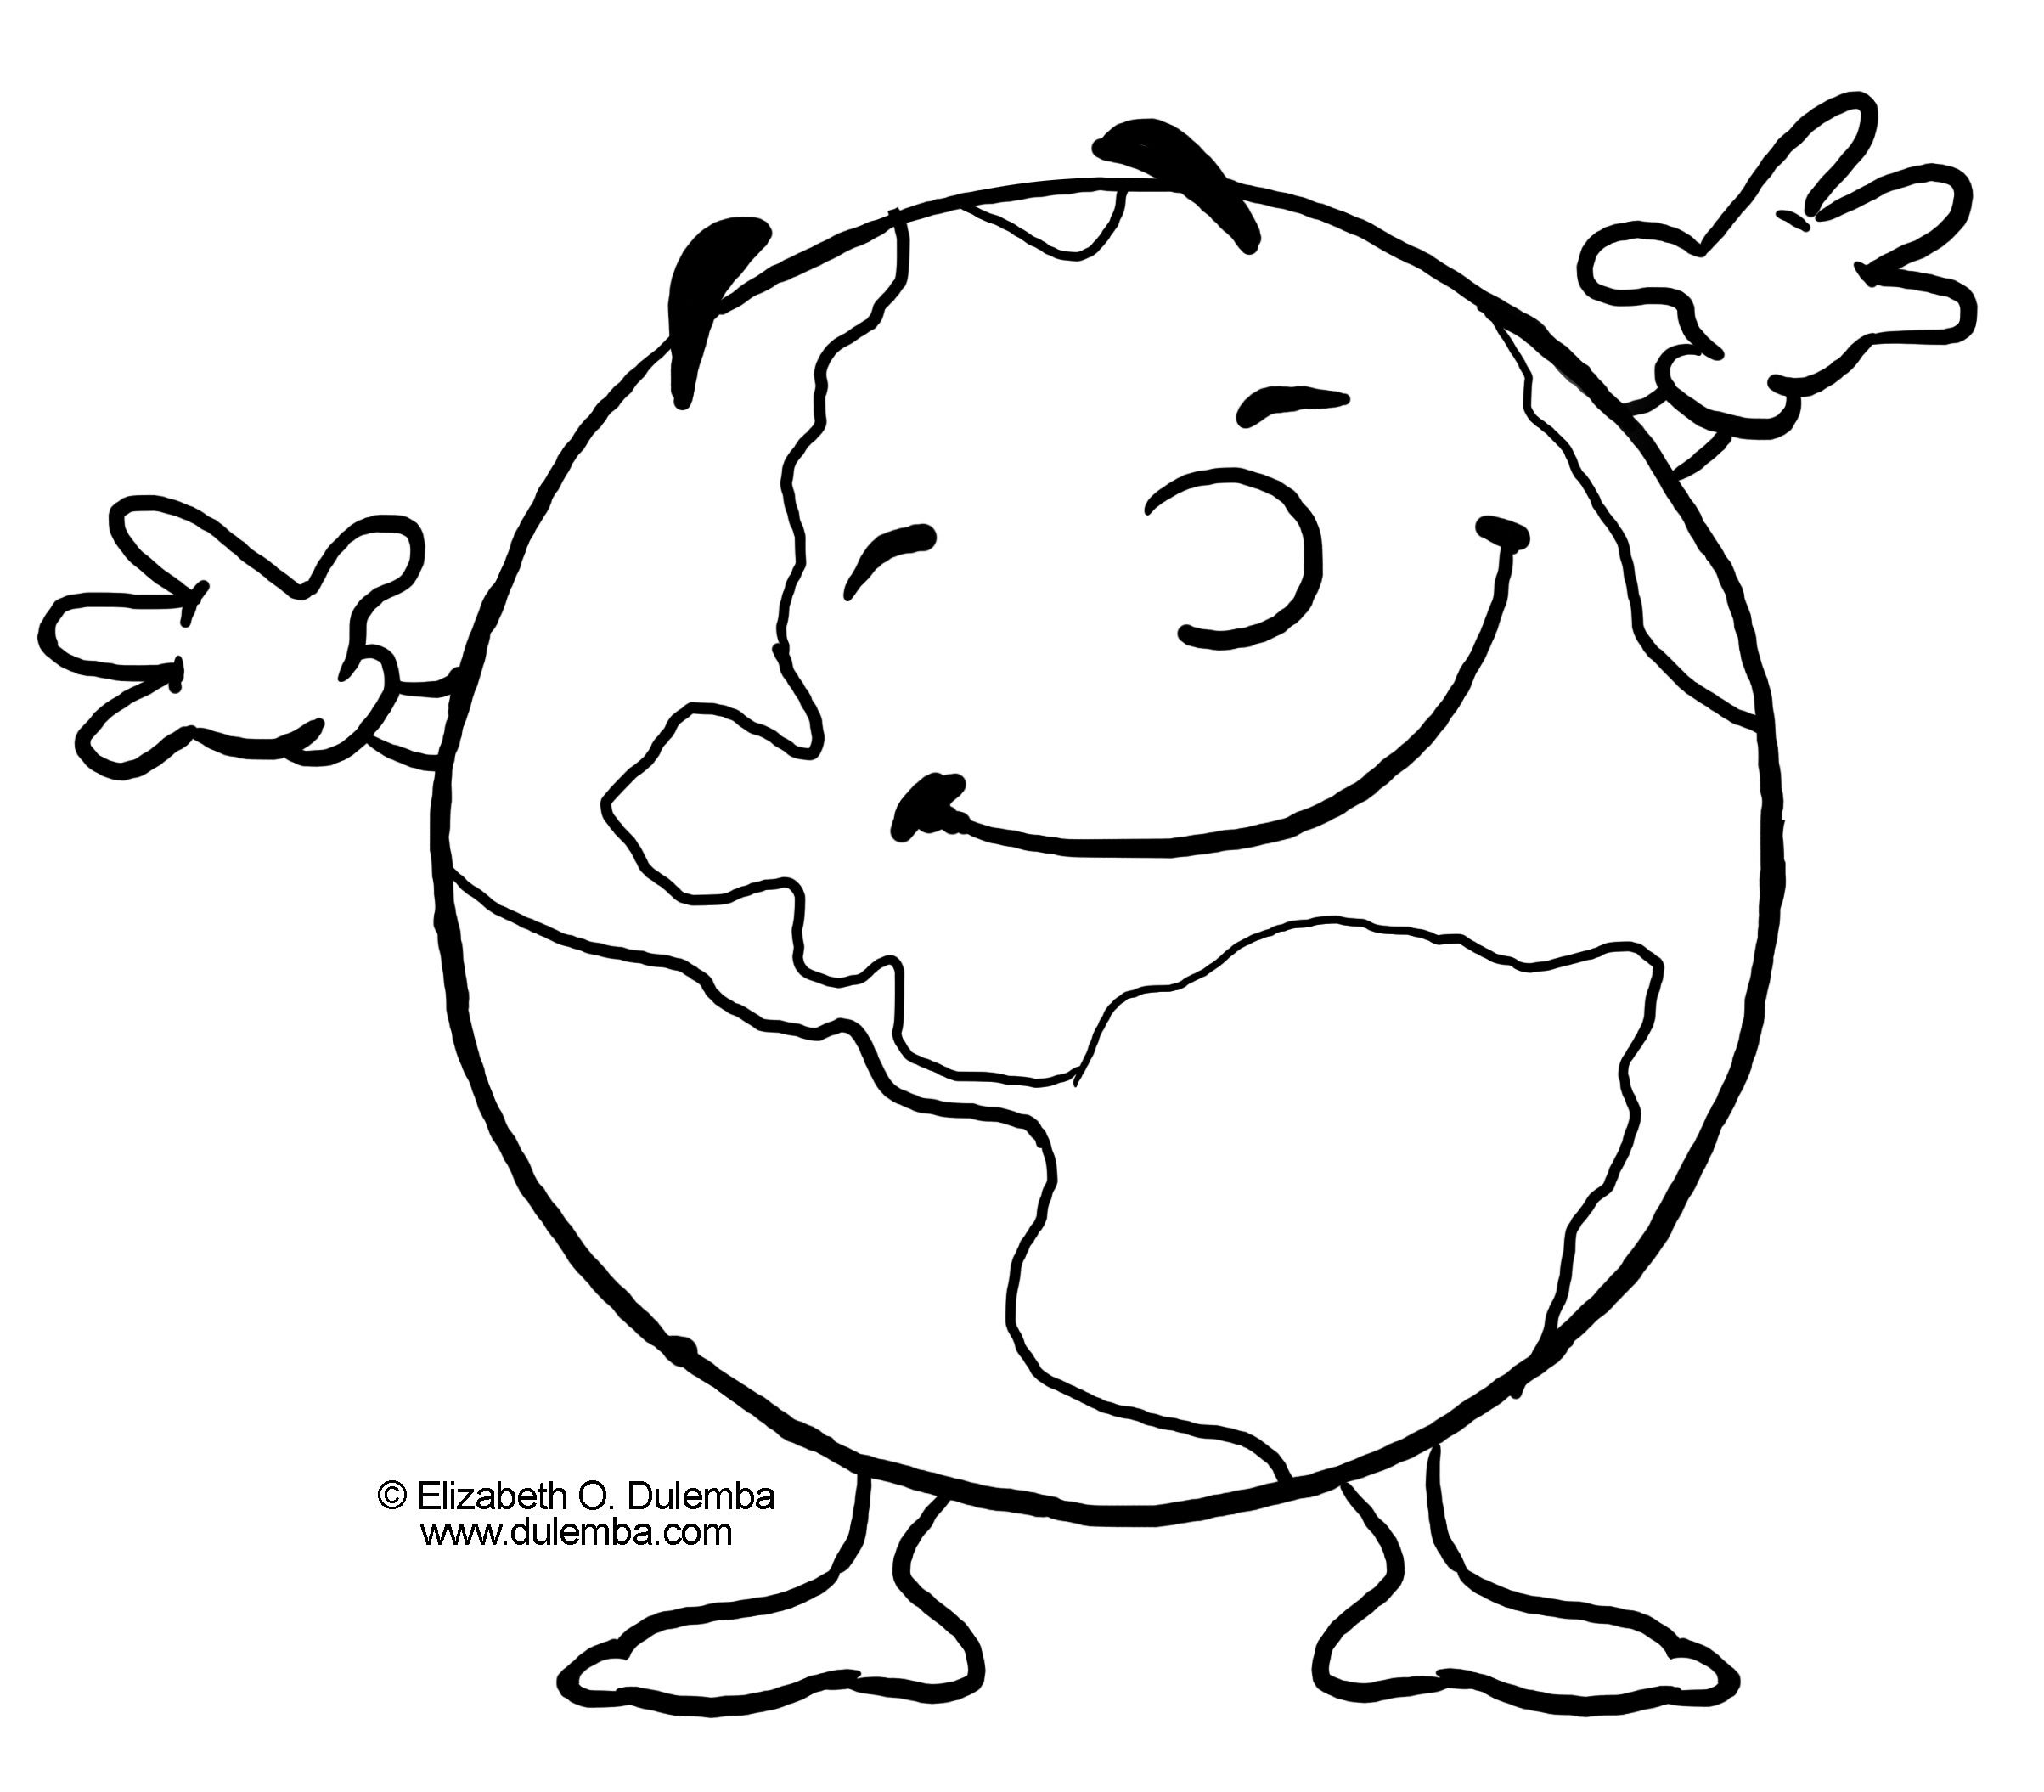 Games Activities Earth Day Coloring Pages Earth Coloring Pages Planet Coloring Pages